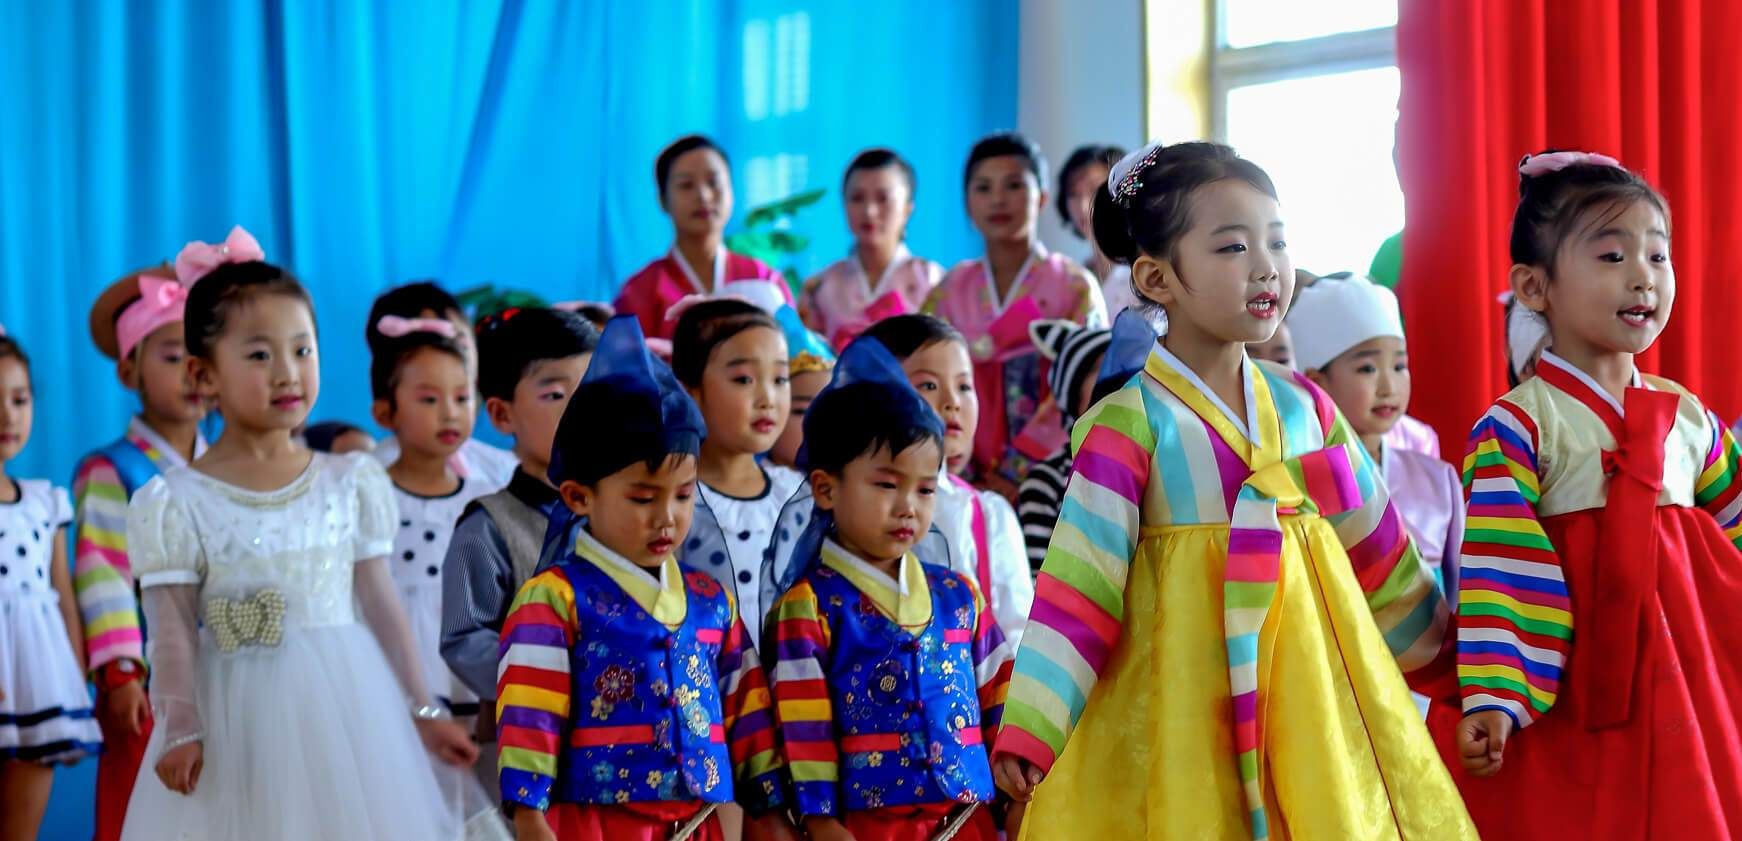 North Korea Kindergarten